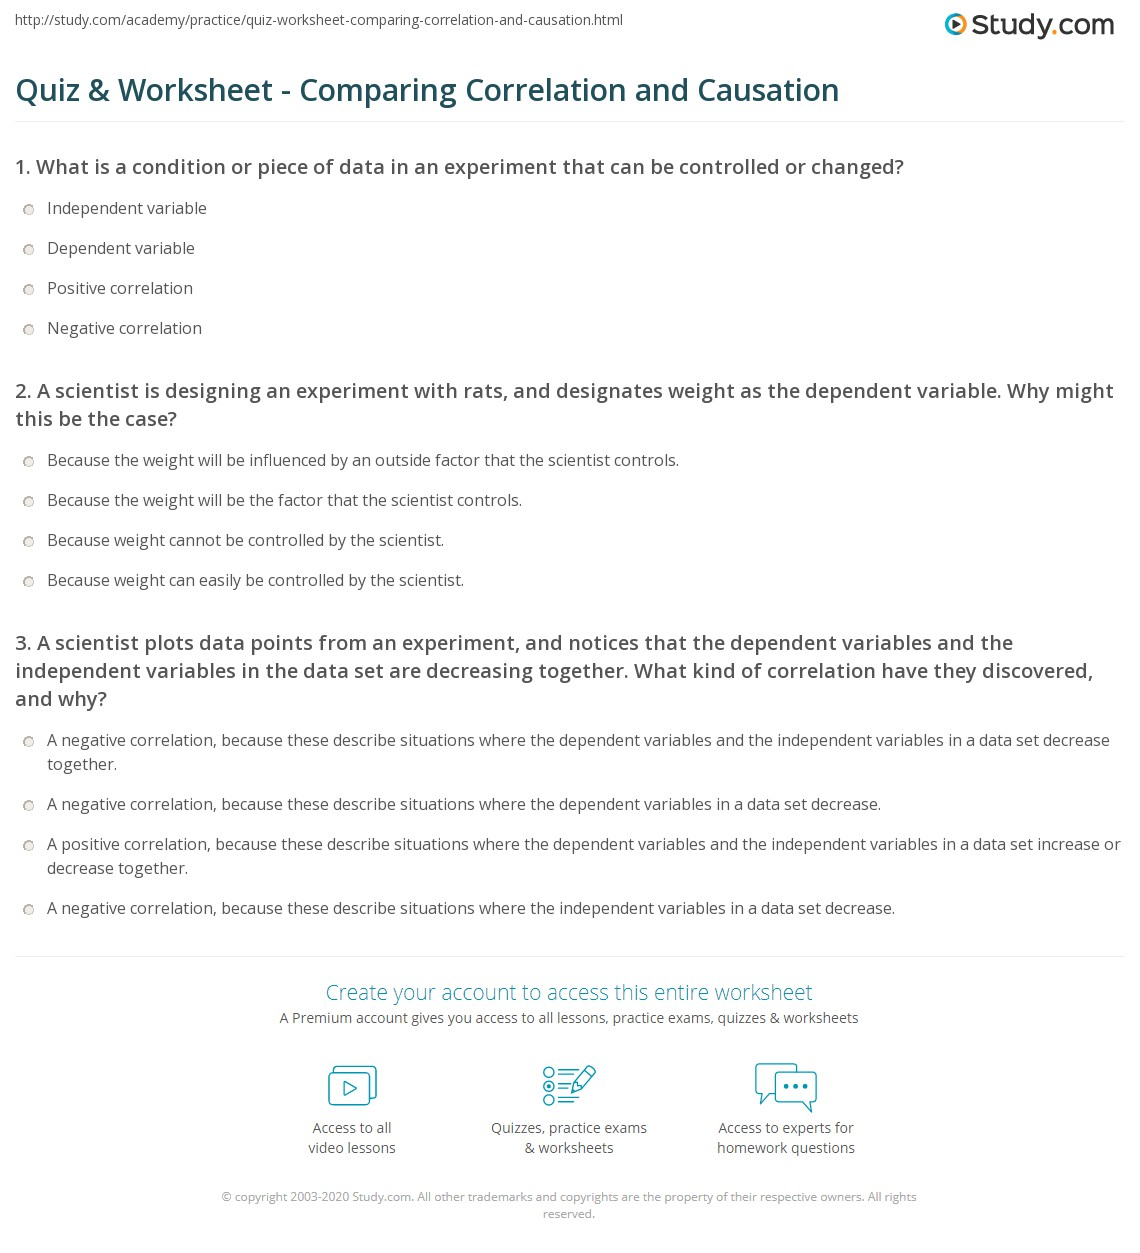 Aldiablosus  Inspiring Quiz Amp Worksheet  Comparing Correlation And Causation  Studycom With Marvelous Print Correlation Vs Causation Differences Amp Definition Worksheet With Extraordinary Courage Worksheets Also Motion And Forces Worksheets In Addition Fractions To Mixed Numbers Worksheet And Adding Time Worksheets As Well As Skills Worksheet Directed Reading Answers Additionally Multiplication Worksheets For Kids From Studycom With Aldiablosus  Marvelous Quiz Amp Worksheet  Comparing Correlation And Causation  Studycom With Extraordinary Print Correlation Vs Causation Differences Amp Definition Worksheet And Inspiring Courage Worksheets Also Motion And Forces Worksheets In Addition Fractions To Mixed Numbers Worksheet From Studycom